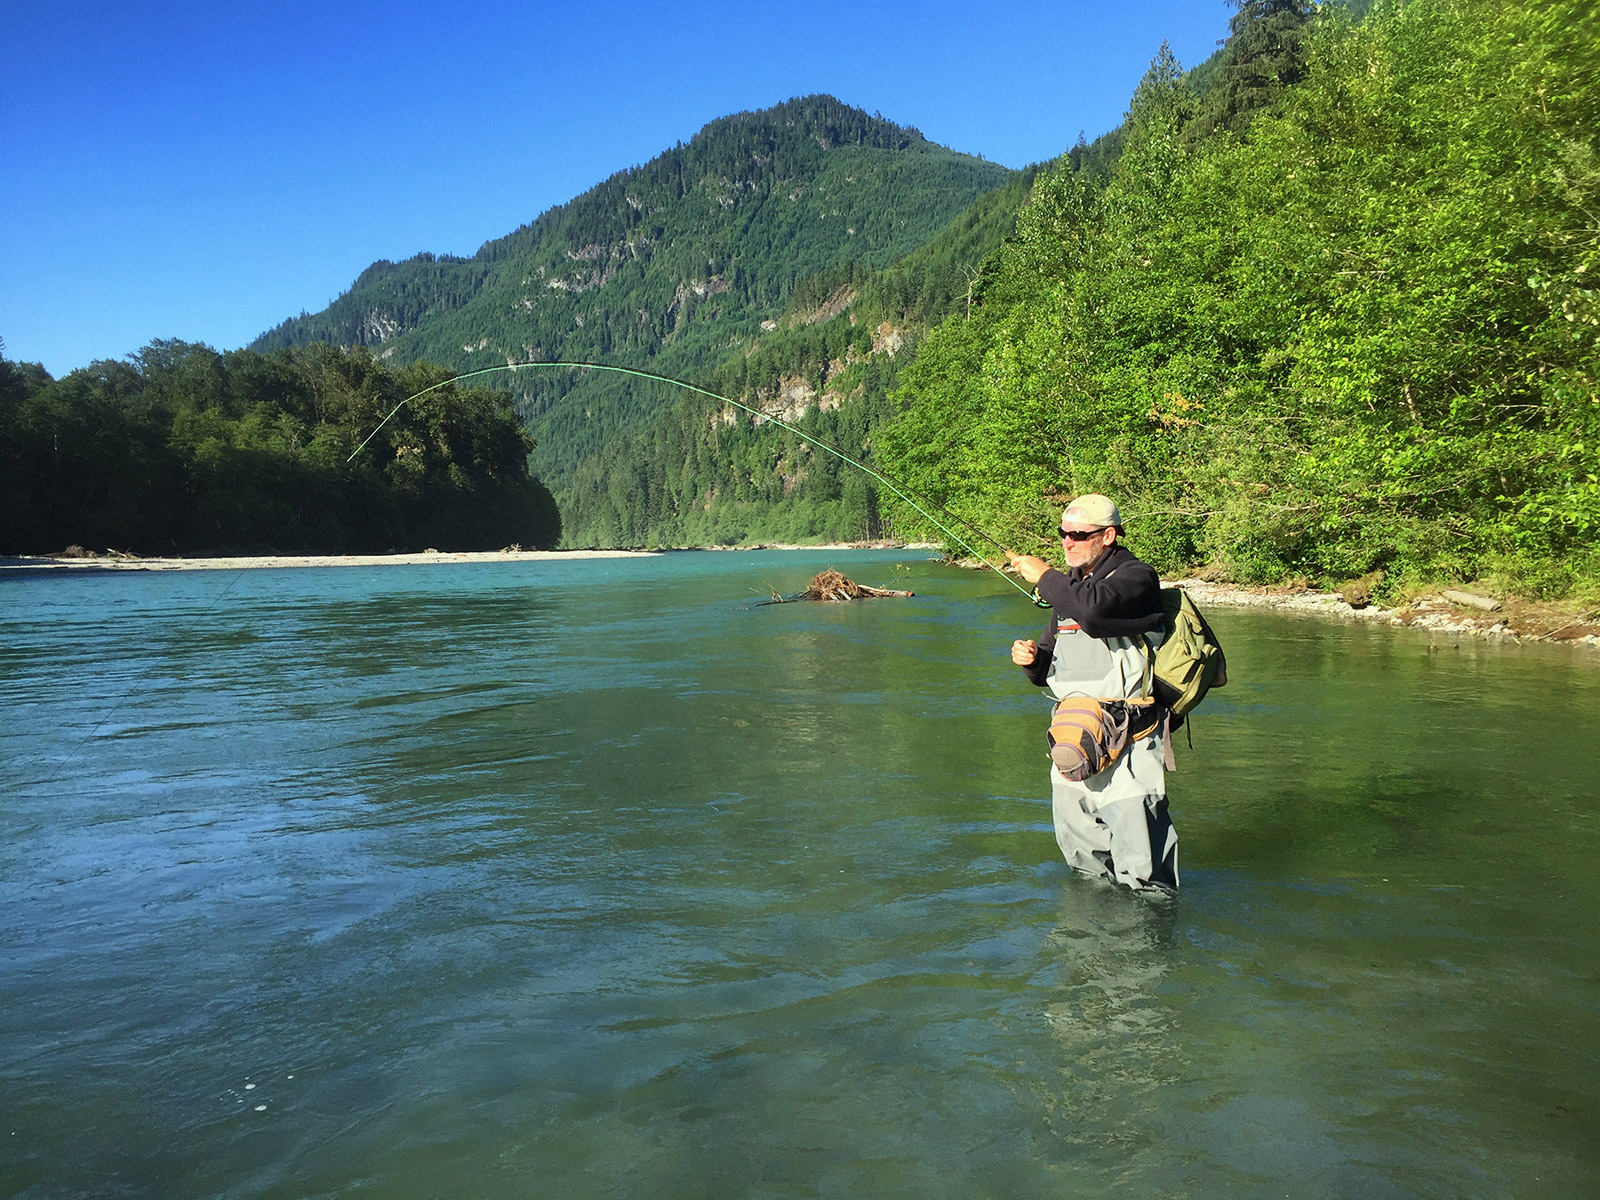 fly fishing, pitt river, bull trout, trout, fly fishing guide, vancouver fly fishing, bc fly fishing, fly fishing tour, fly fishing trips, vancouver fly fishing tours, pitt river fly fishing guide